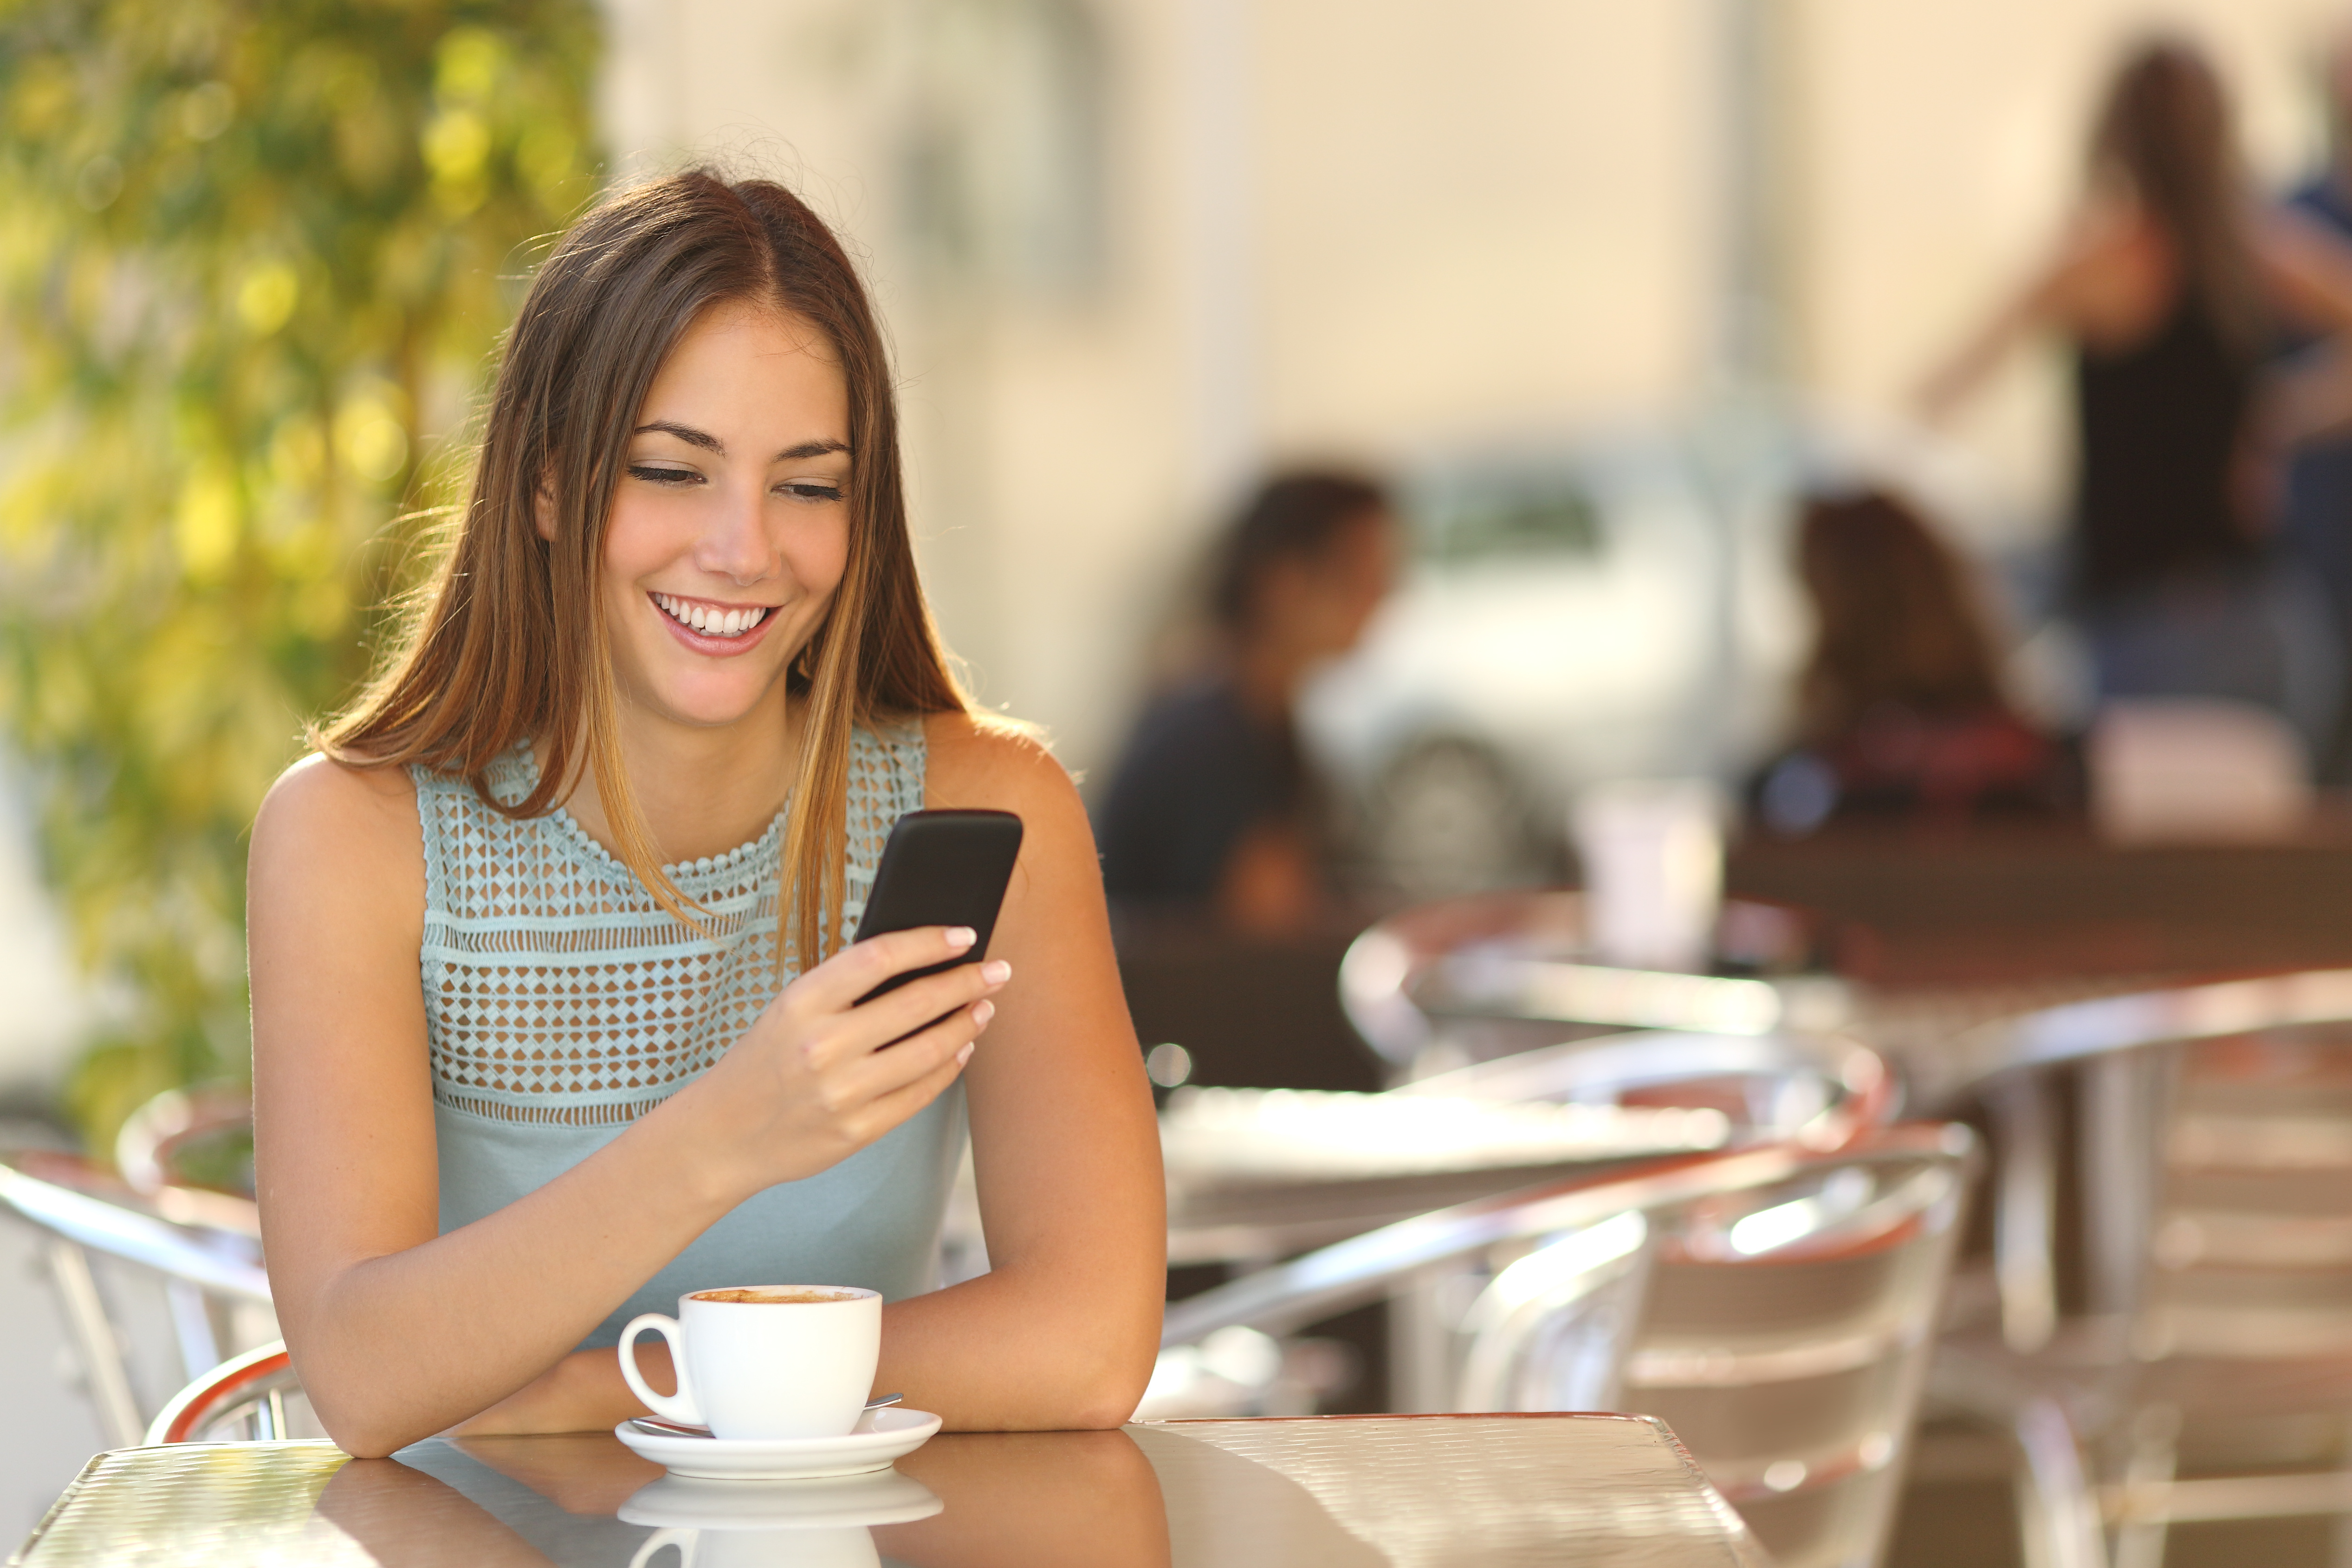 girl on cell phone at cafe looking at high SEO content